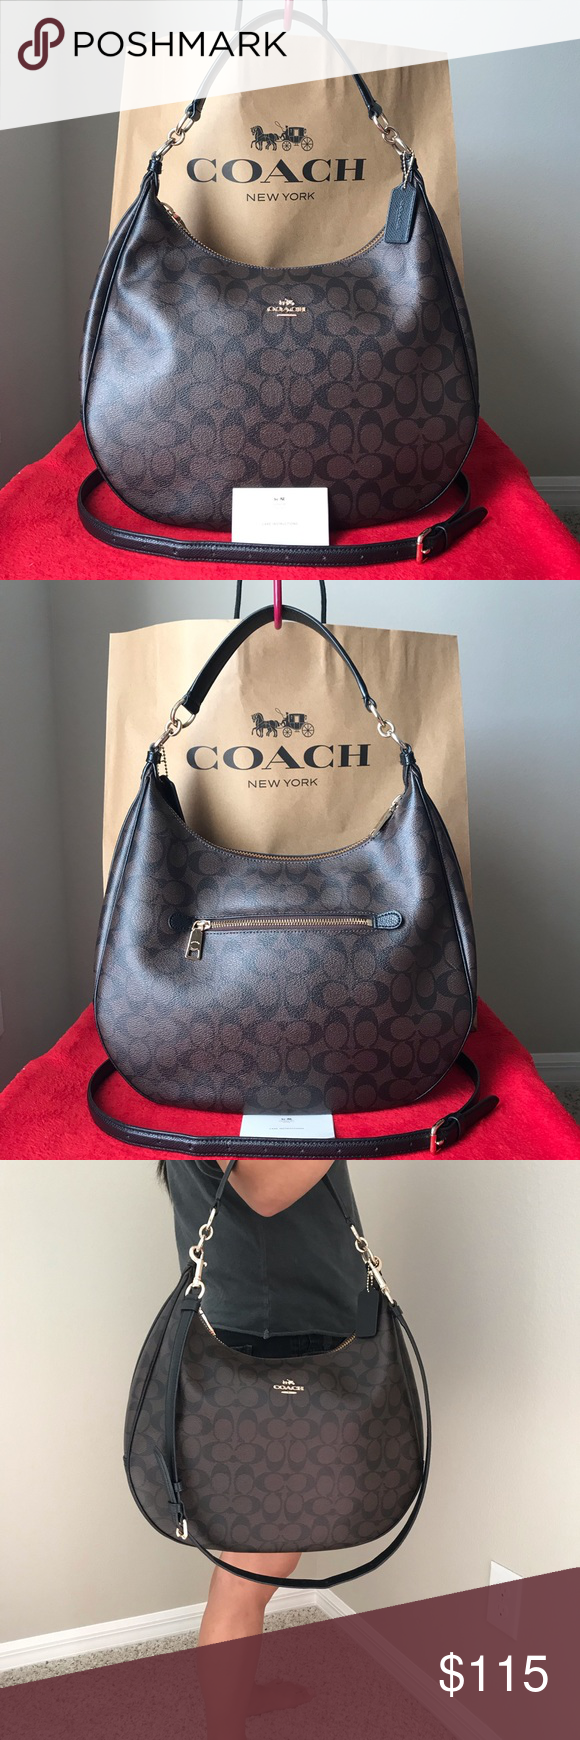 0932524387 ✅✅Coach Purse✅✅ Coach F38300 Harley Hobo Signature Brown / Black **This  model has the serial number on white cloth path inside the pocket as shown  in ...